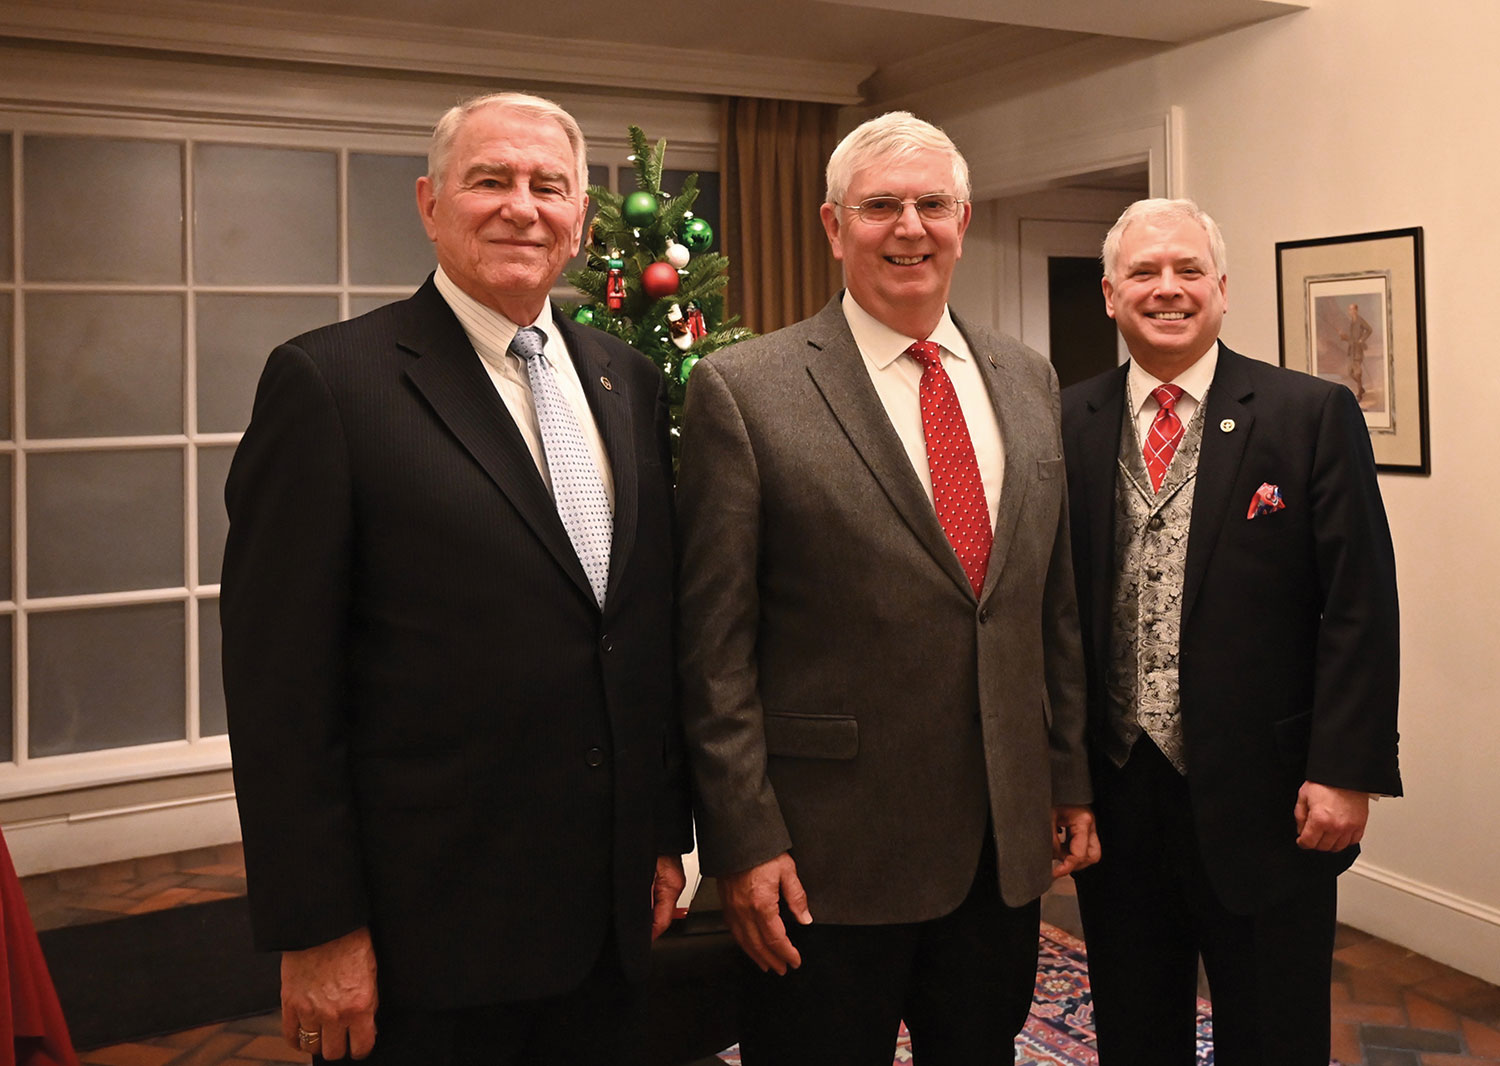 From left: Founding CEO Col. (Ret.) Bob Ulin, the second CEO Col. (Ret.) Doug Tystad, and the current President/CEO Col. (Ret.) Rod Cox.